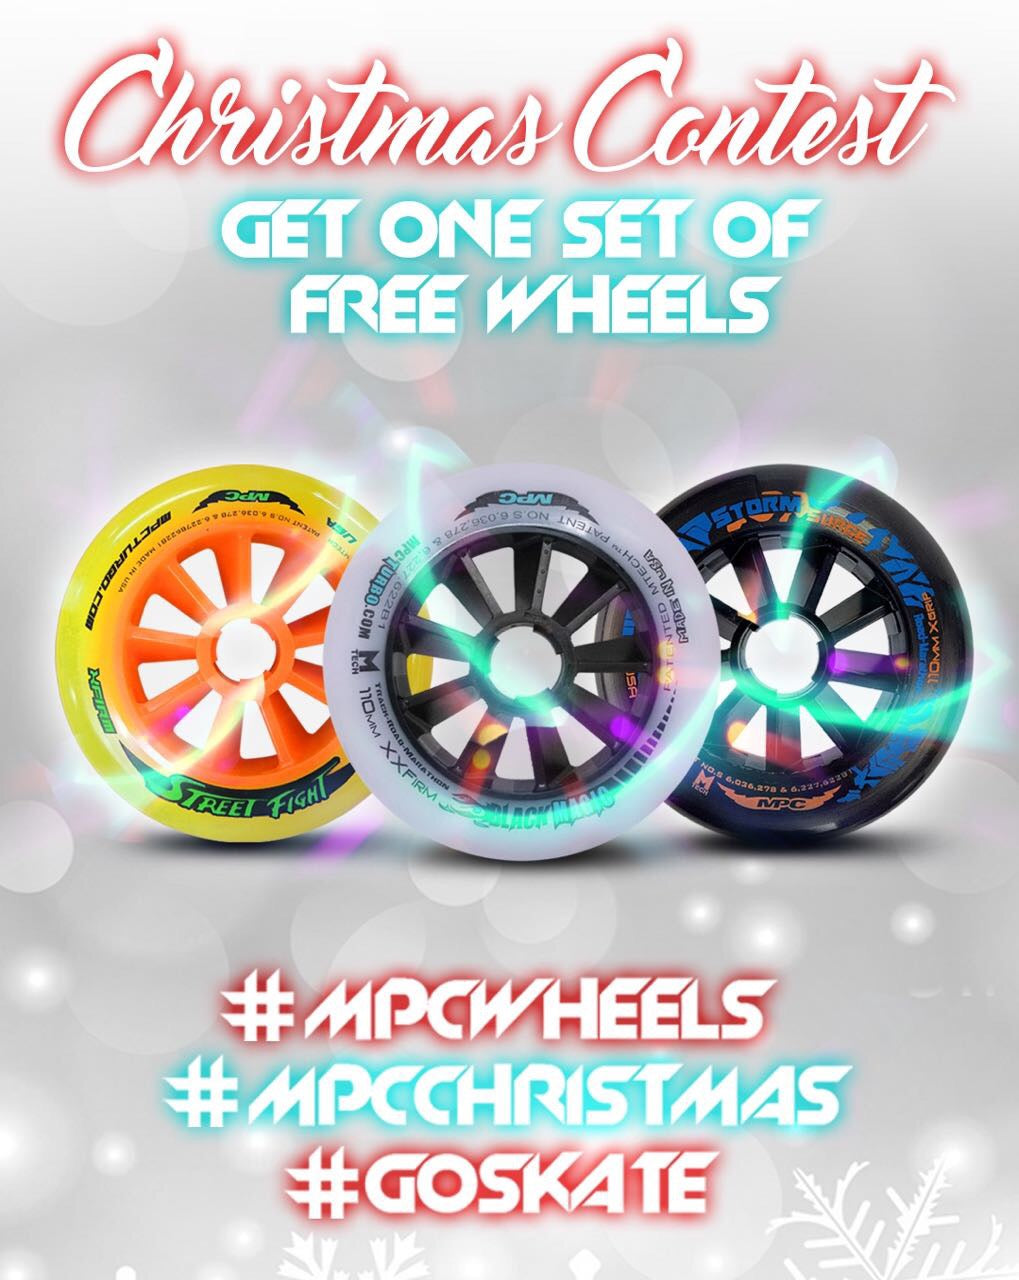 MPC Wheels Christmas contest is here!